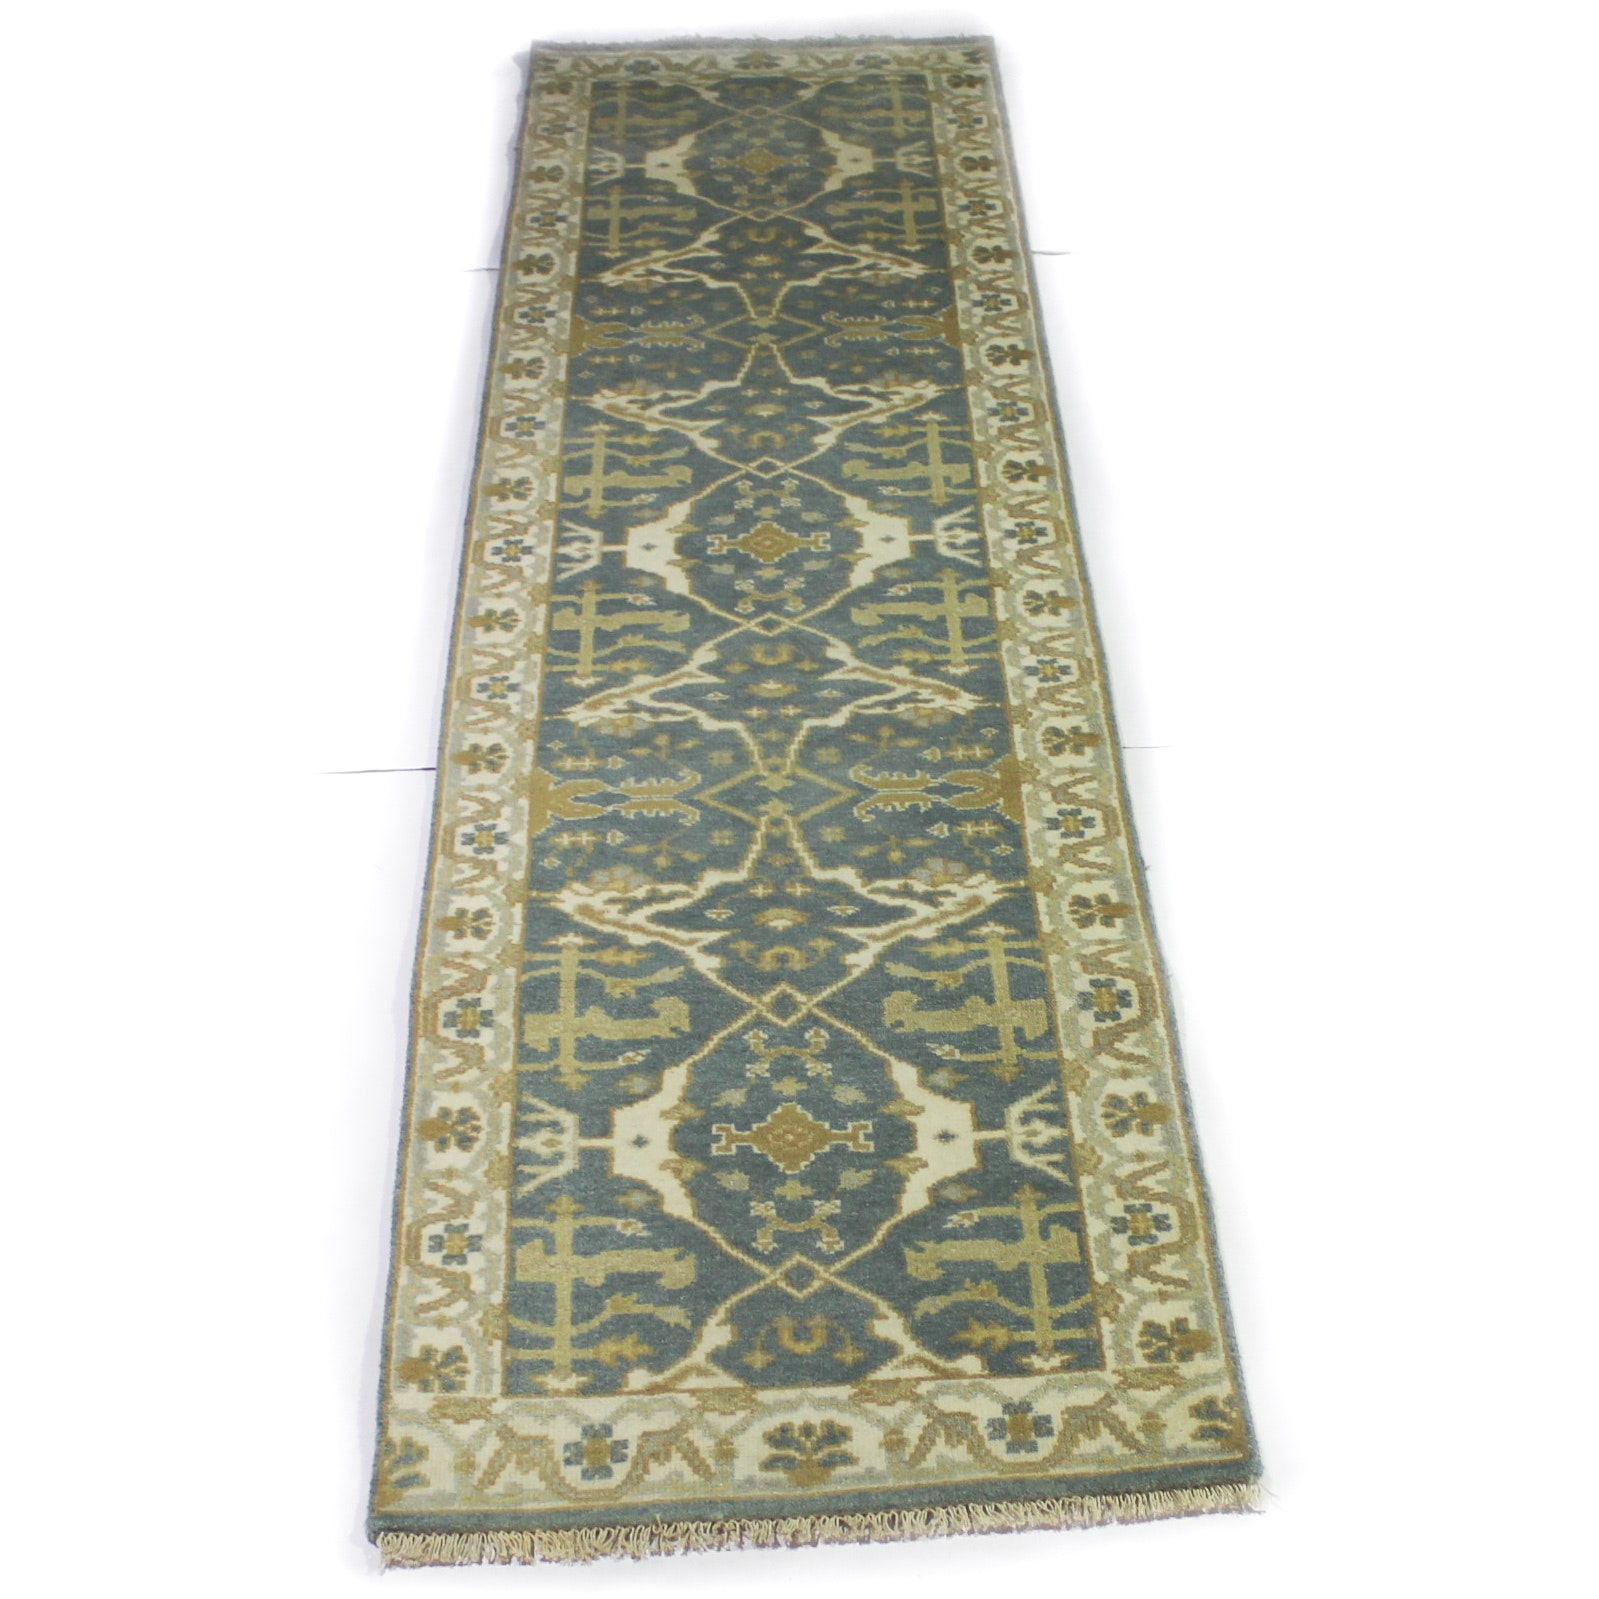 2'6 x 10'1 Hand-Knotted Indo-Turkish Oushak Carpet Runner